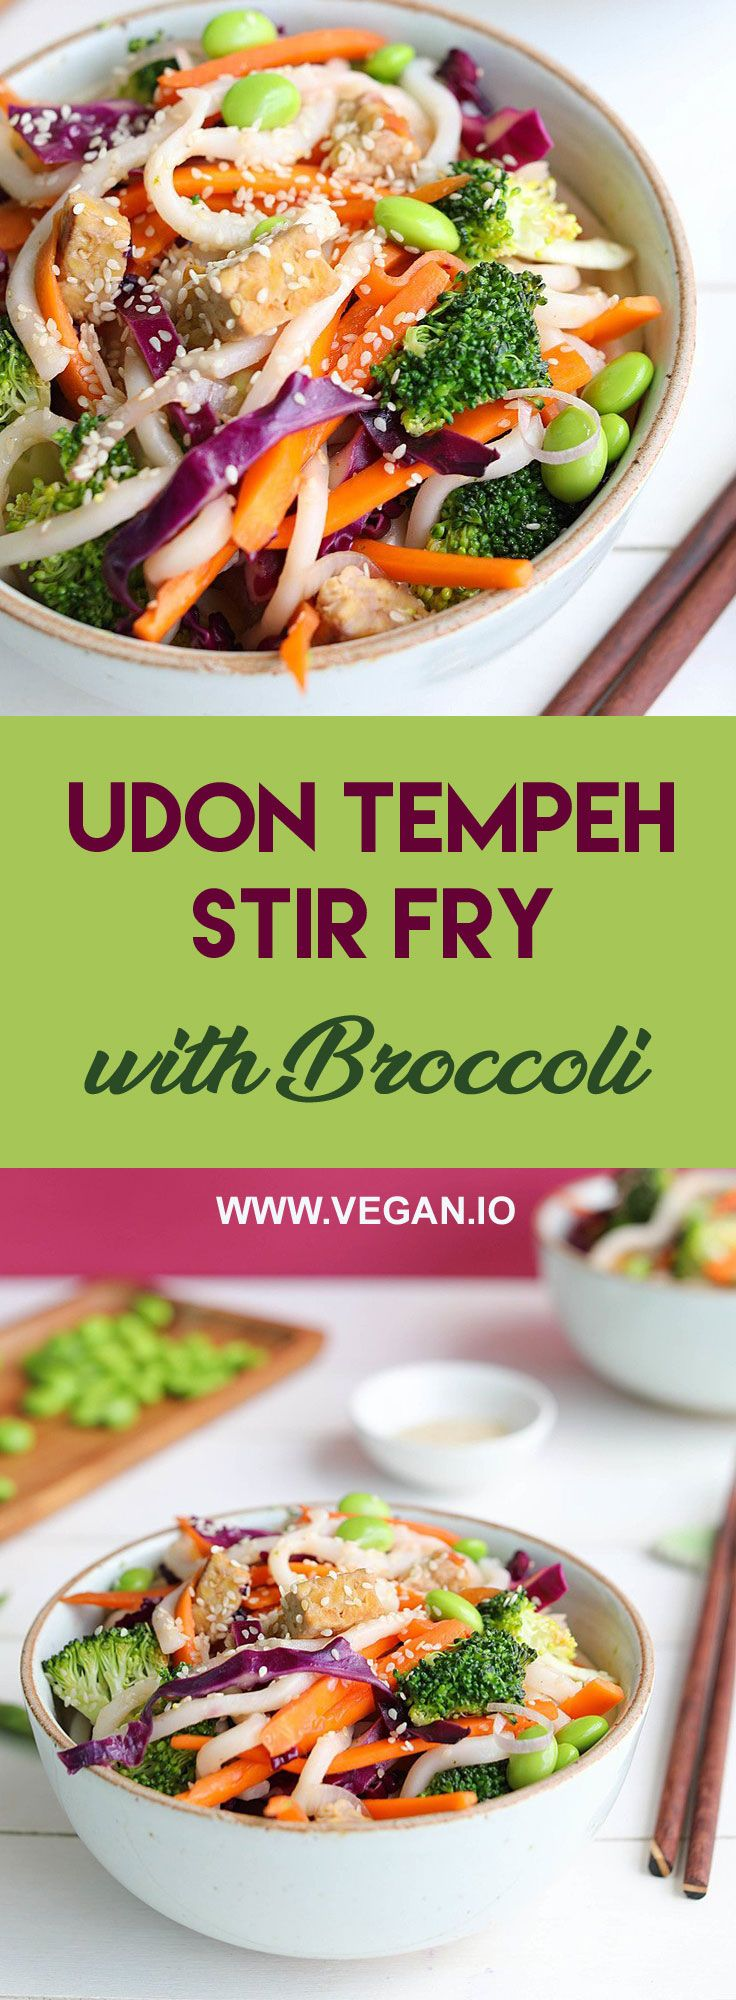 Udon Tempeh Stir Fry With Broccoli